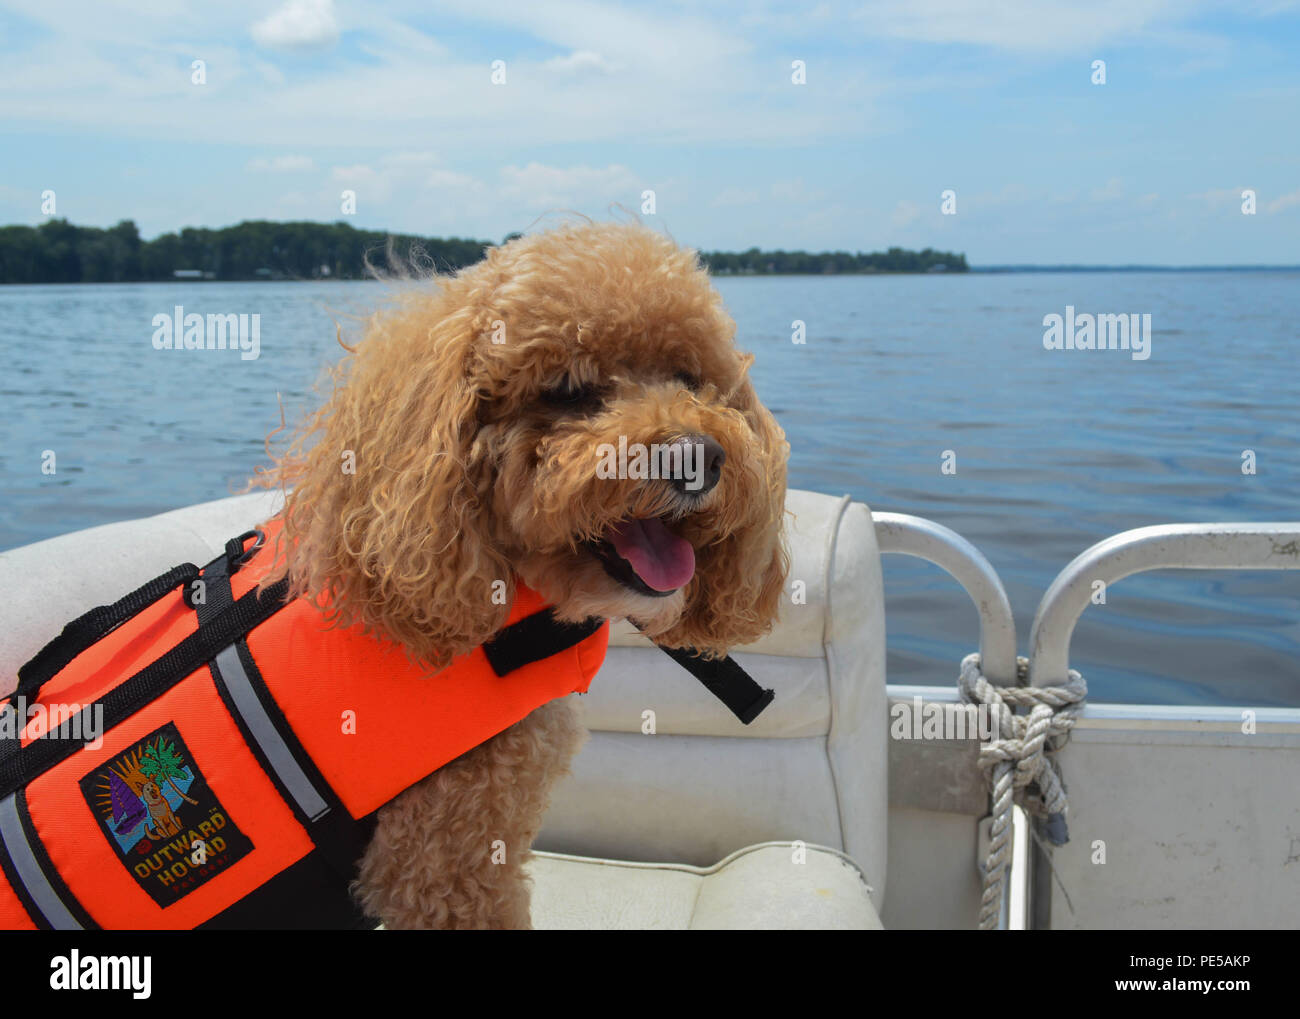 Tobey, the Cockapoo, Loves Having Fun On The Pontoon Boat Sporting His Outward Hound Life Vest - Stock Image